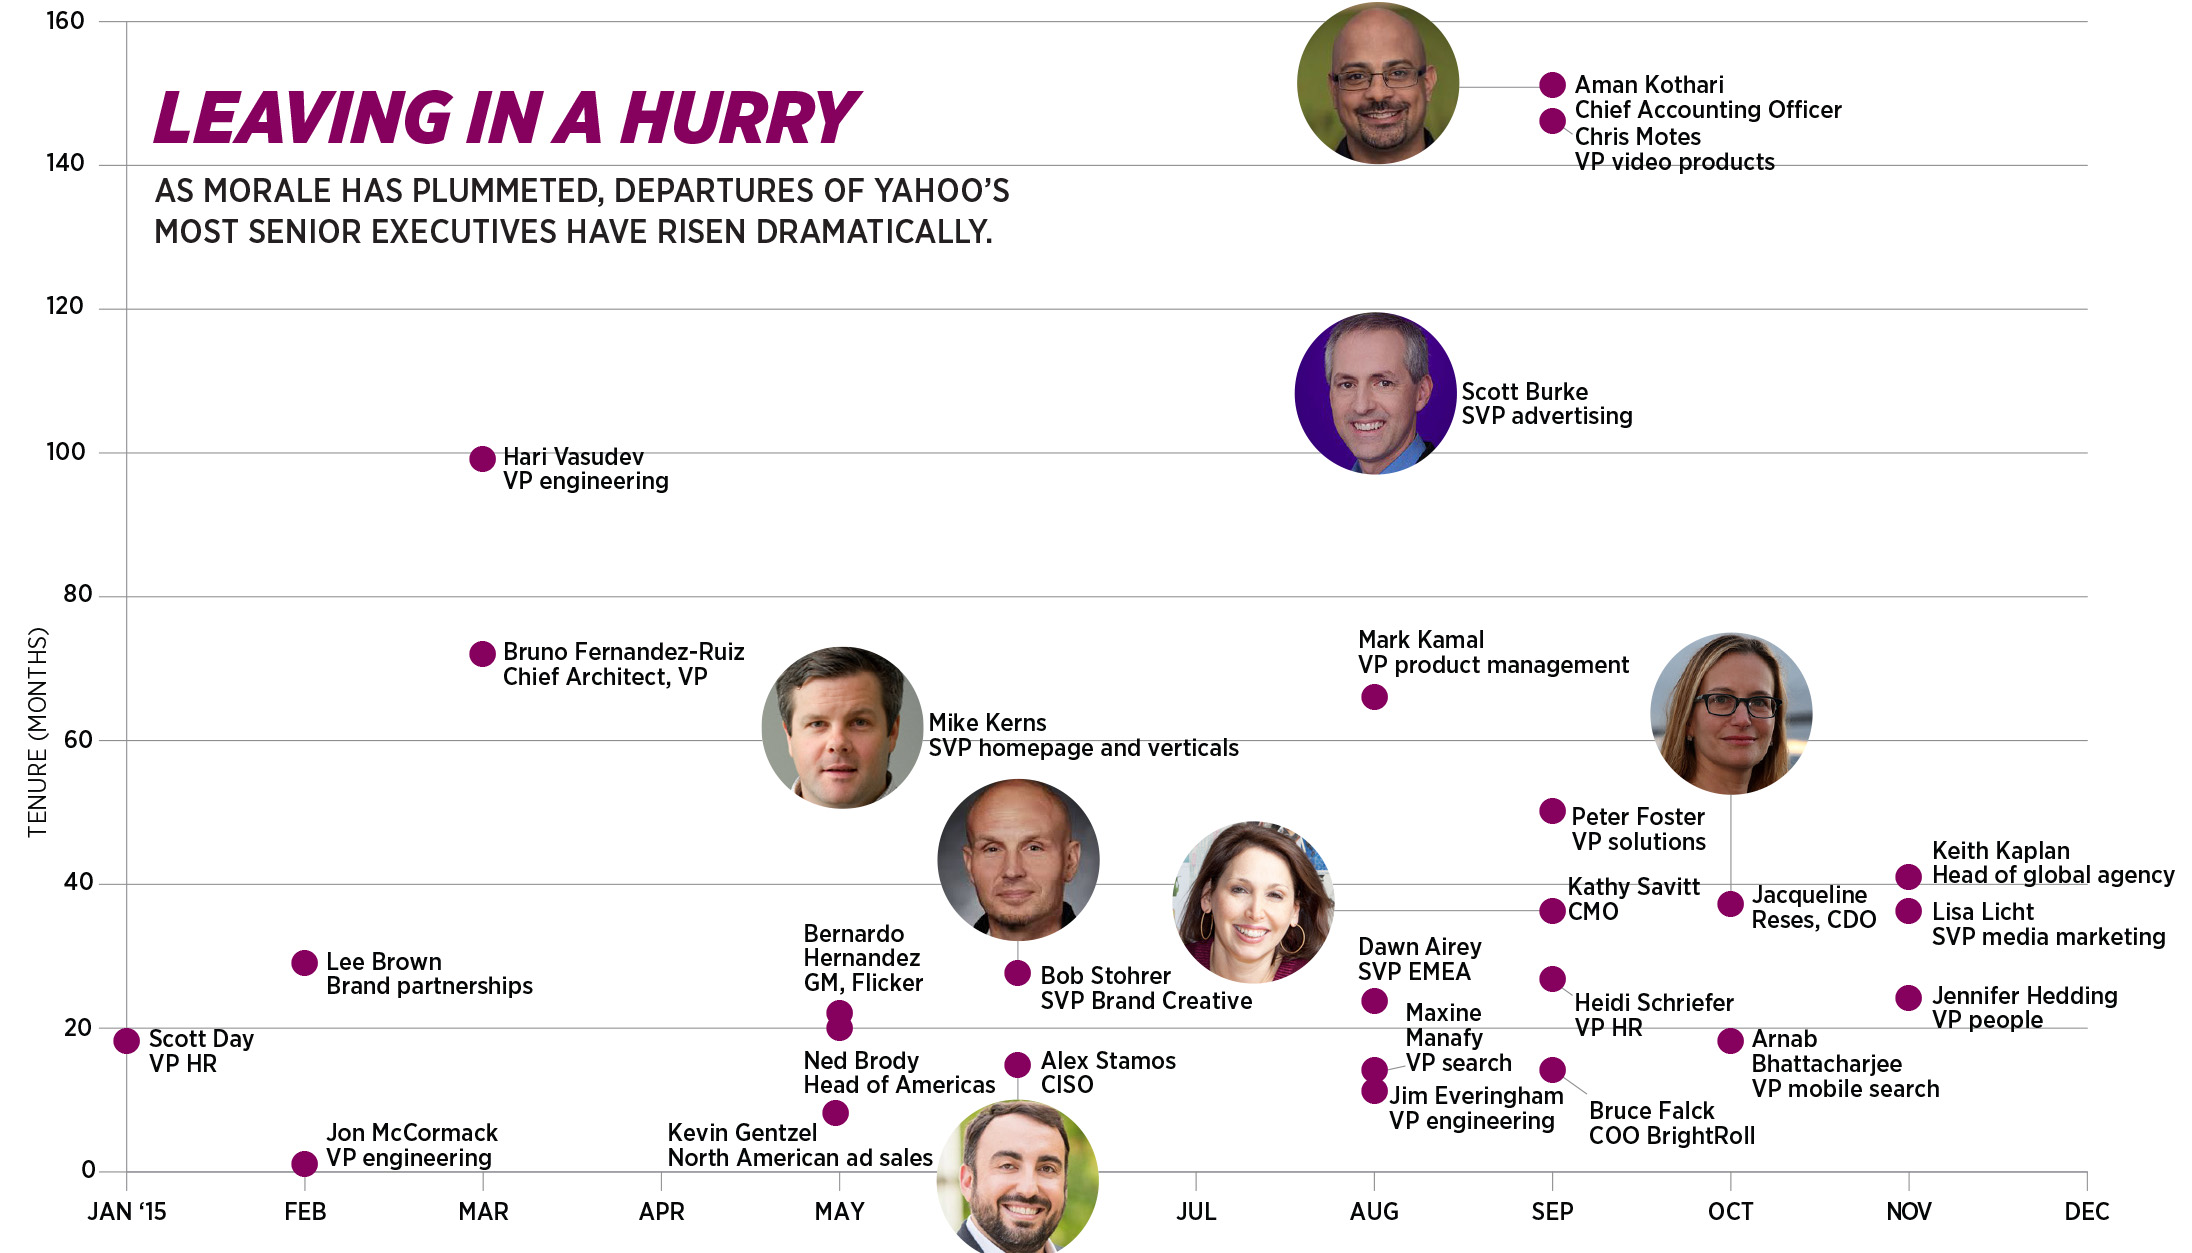 Should Marissa Mayer Focus On A Strong HR Strategy